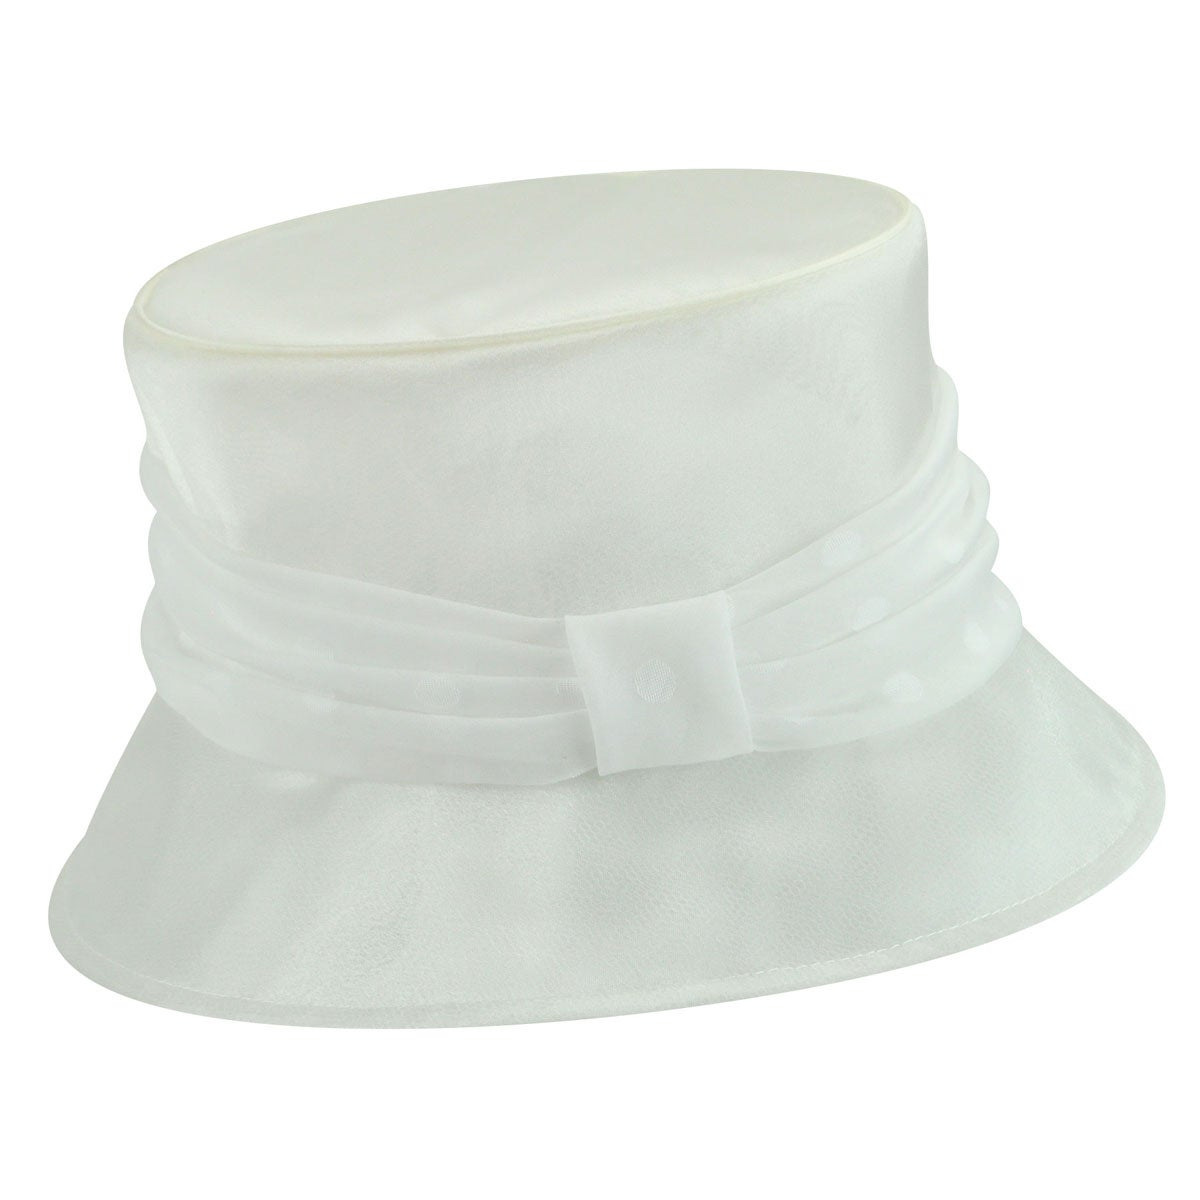 Edwardian Style Hats, Titanic Hats, Derby Hats Marliana Hat $50.00 AT vintagedancer.com